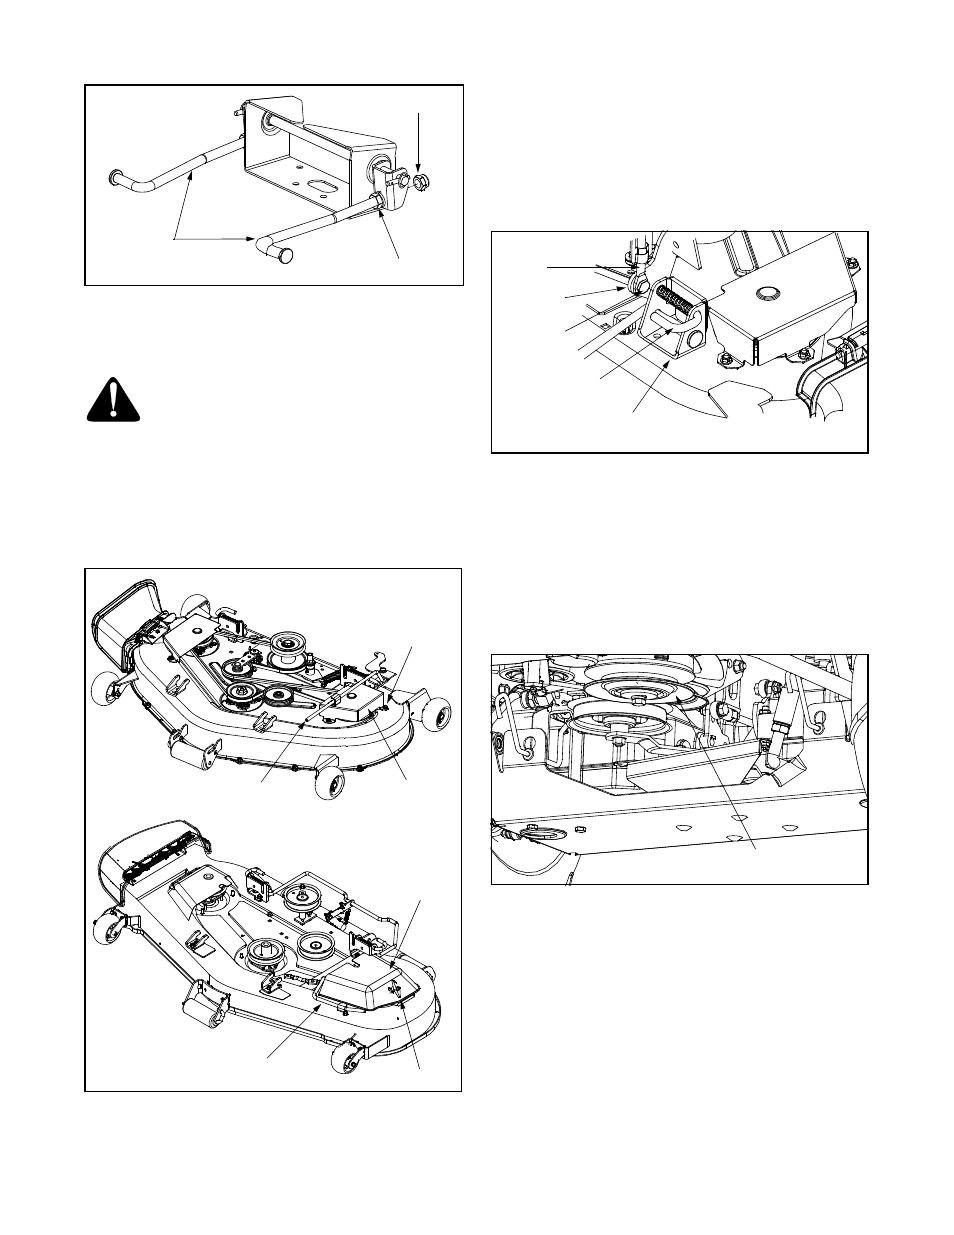 Removing the mower deck | Cub Cadet 365 User Manual | Page